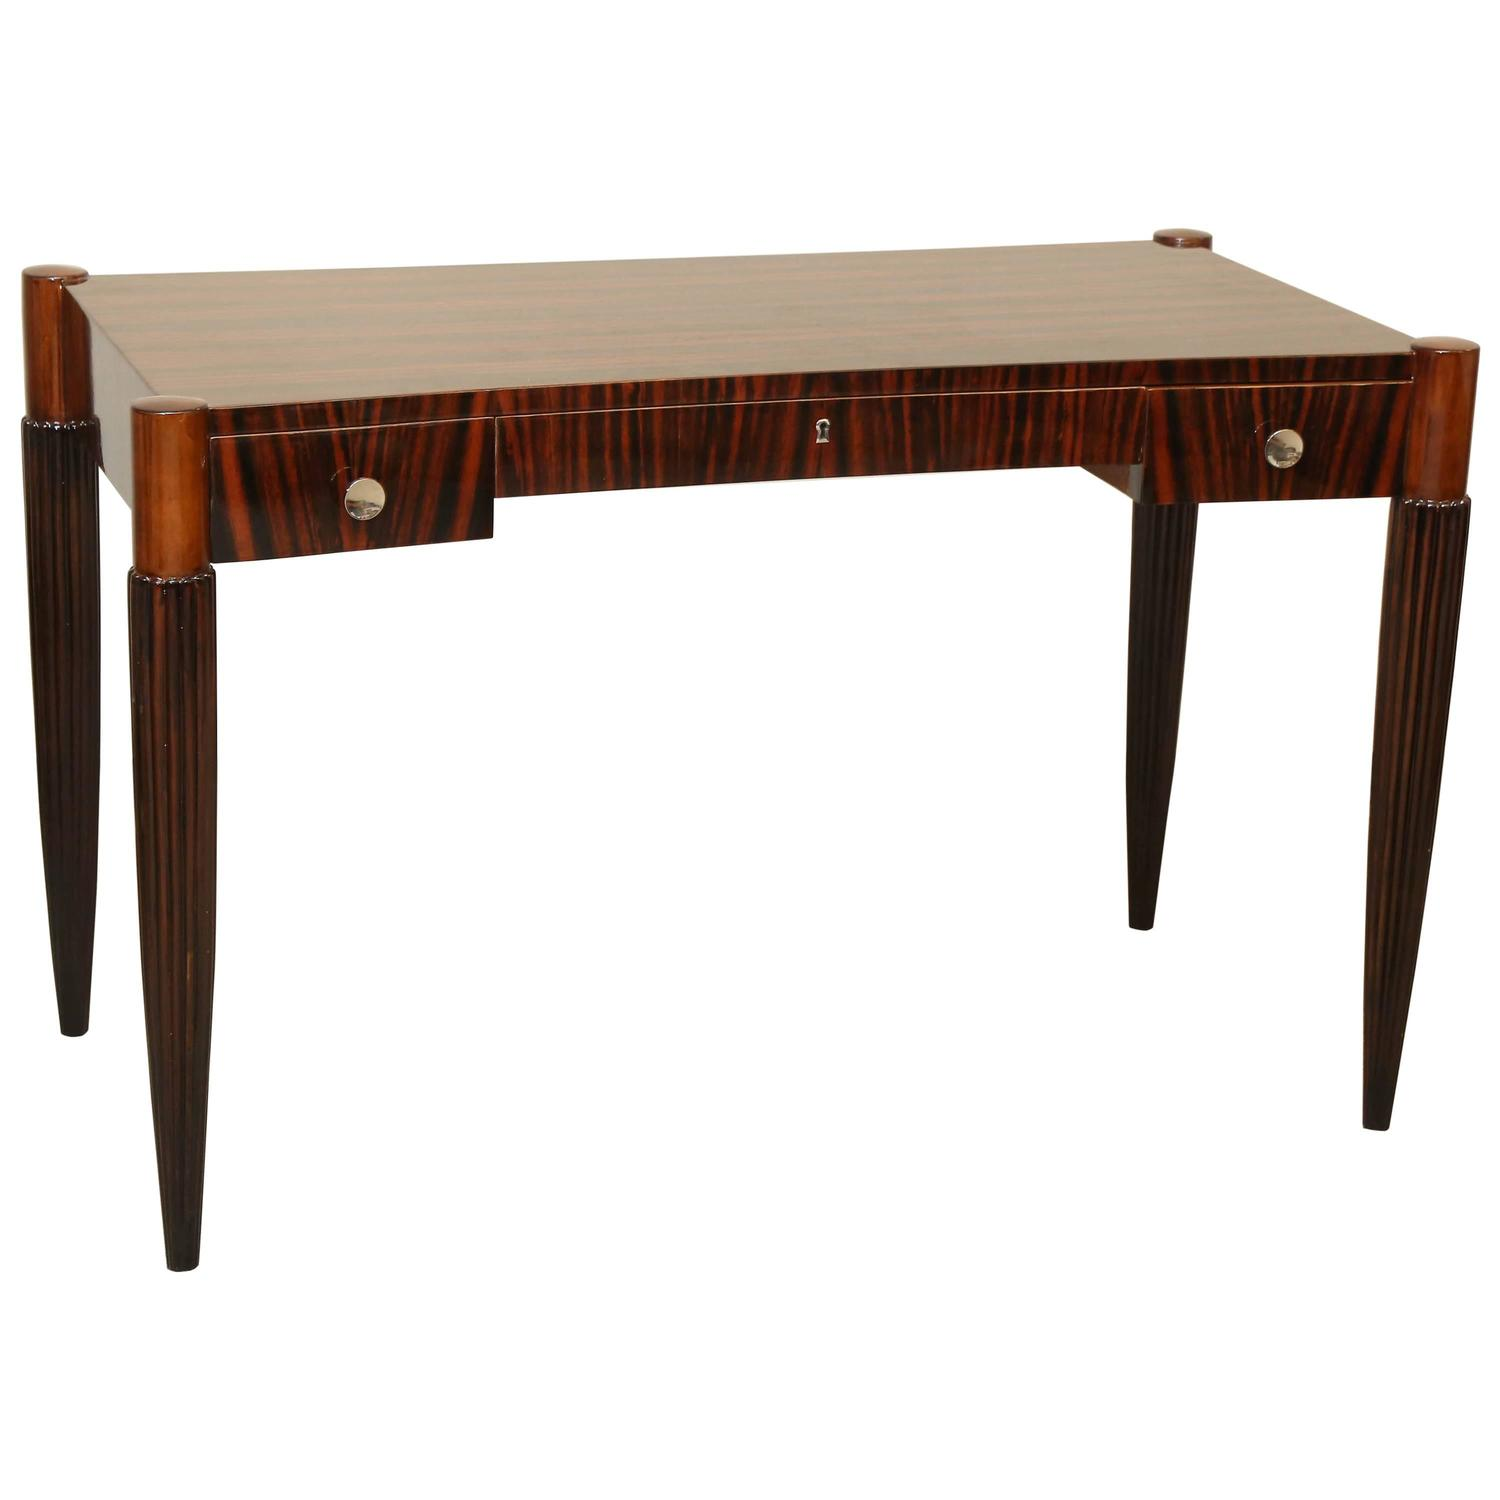 Art deco elegant writing desk at 1stdibs for Art deco writing